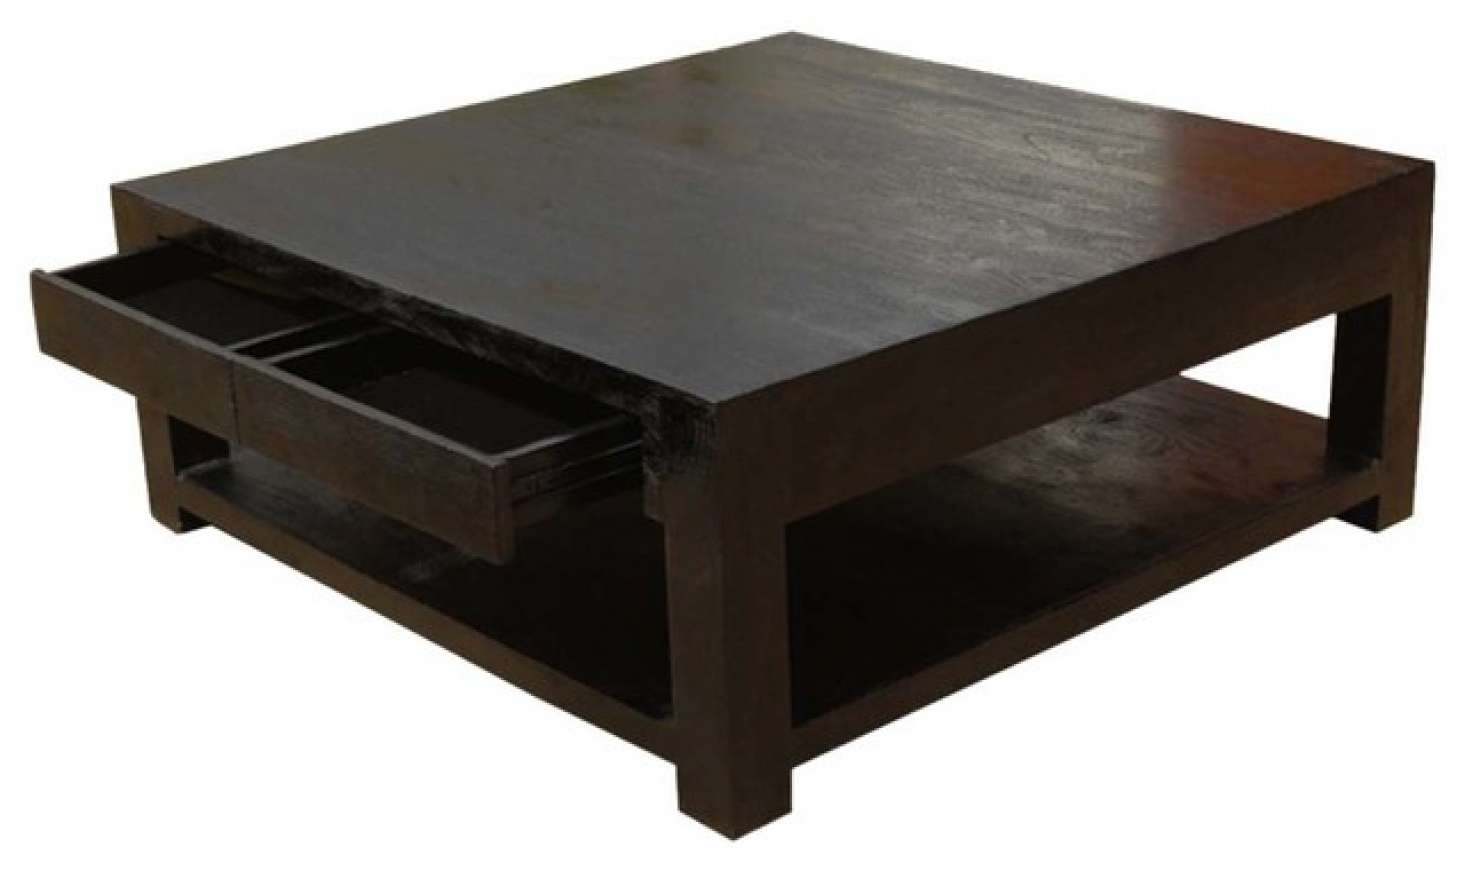 Oversized Square Coffee Tables For Newest Square Coffee Tables (View 16 of 20)